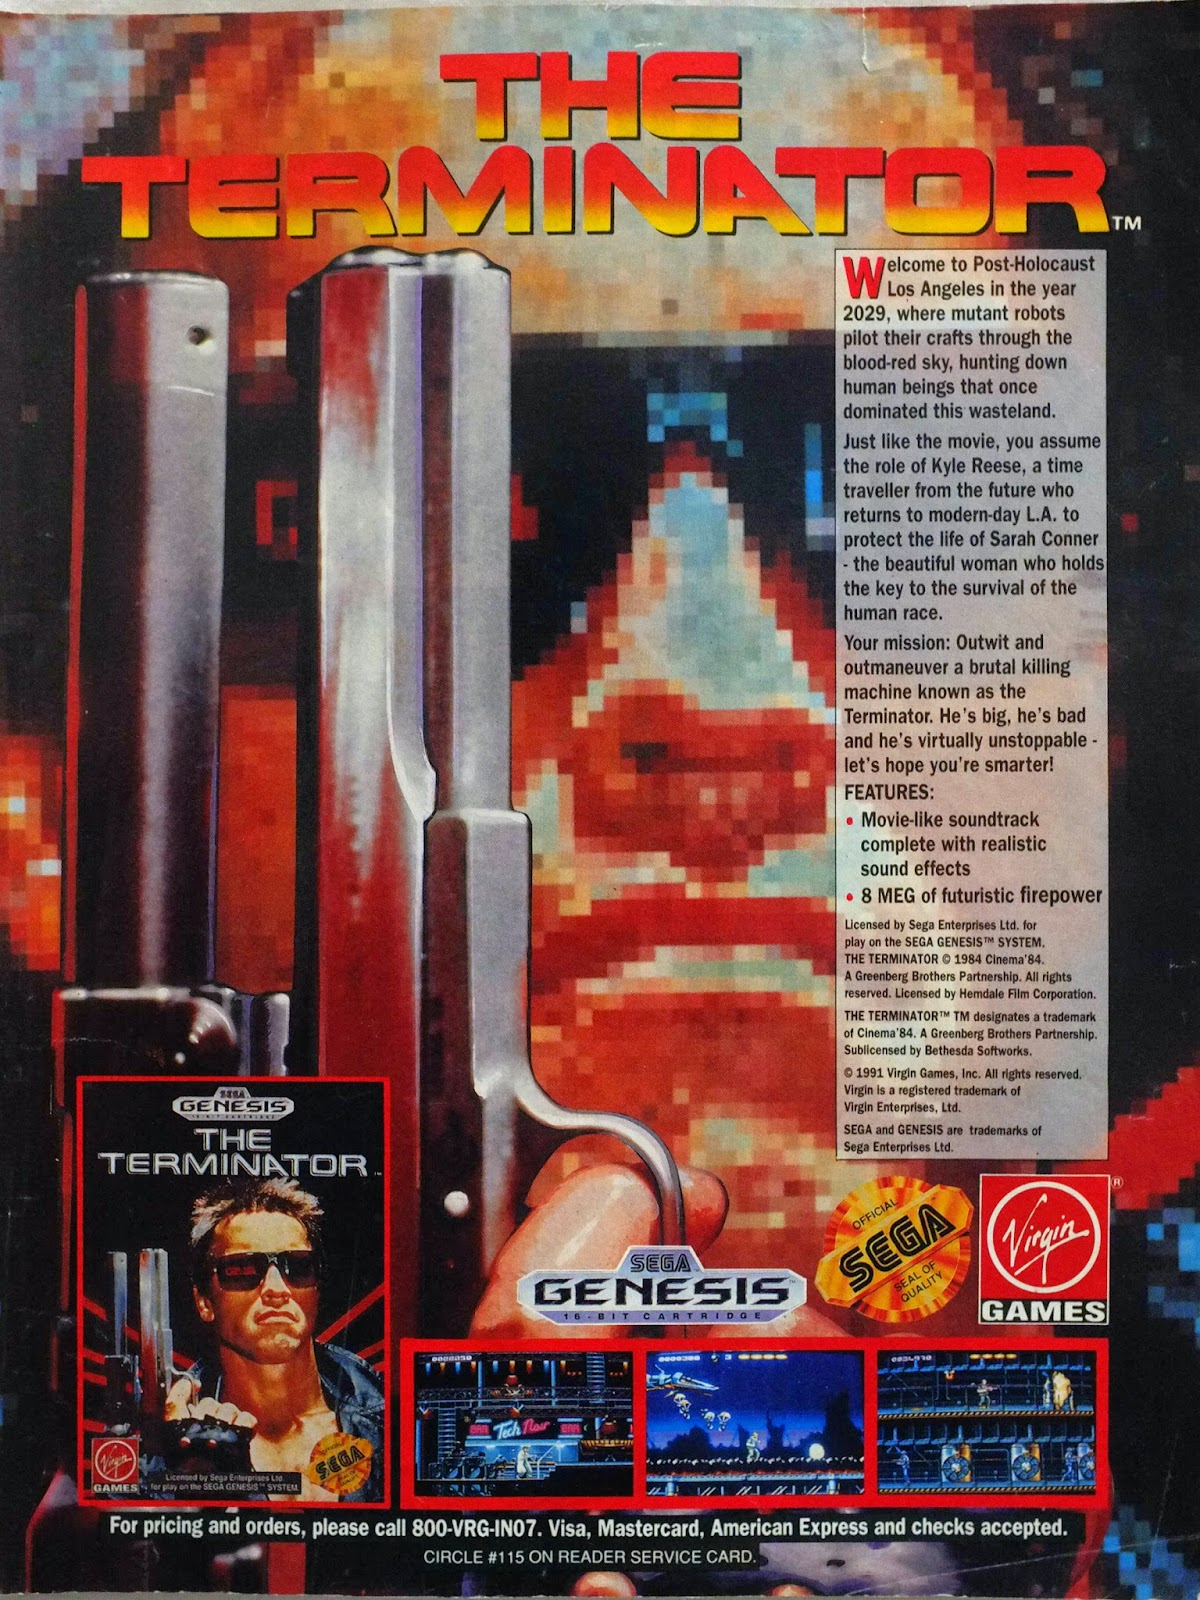 The Terminator for Genesis advertisement